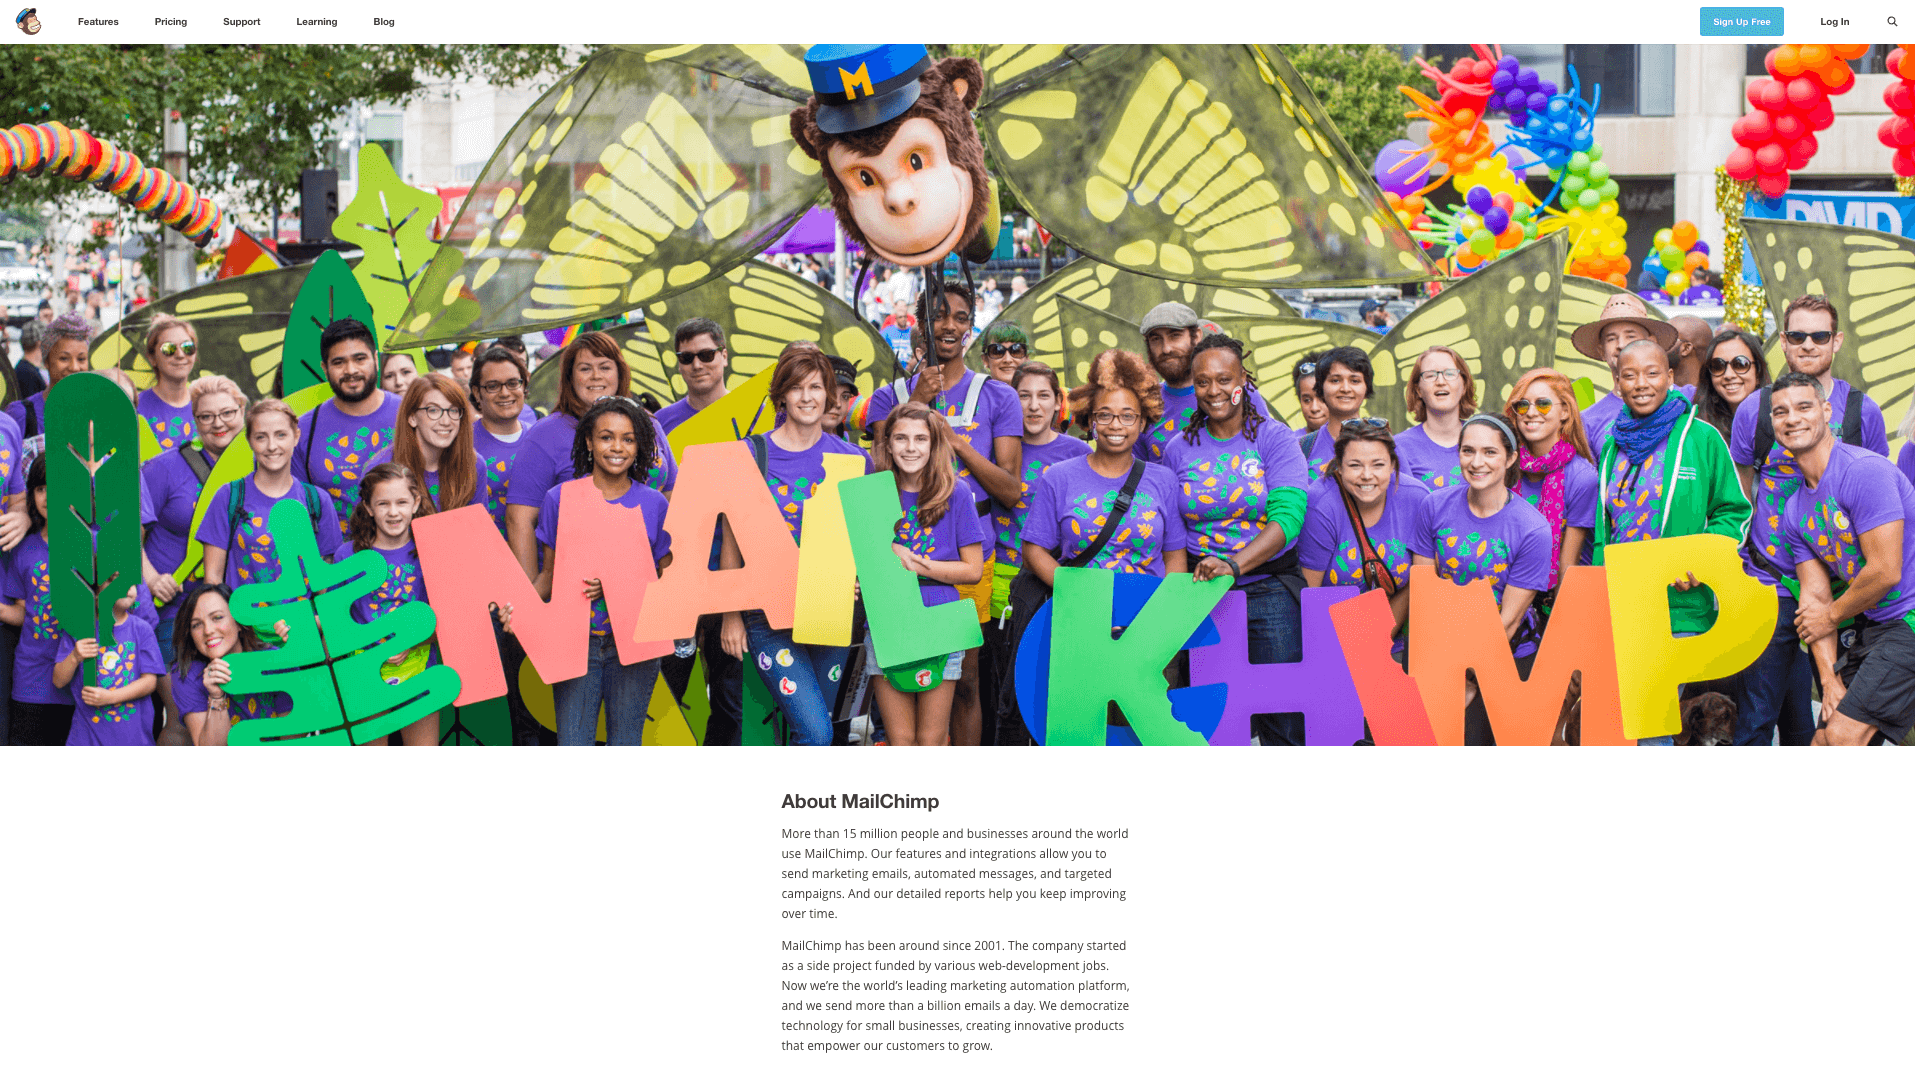 About Mailchimp